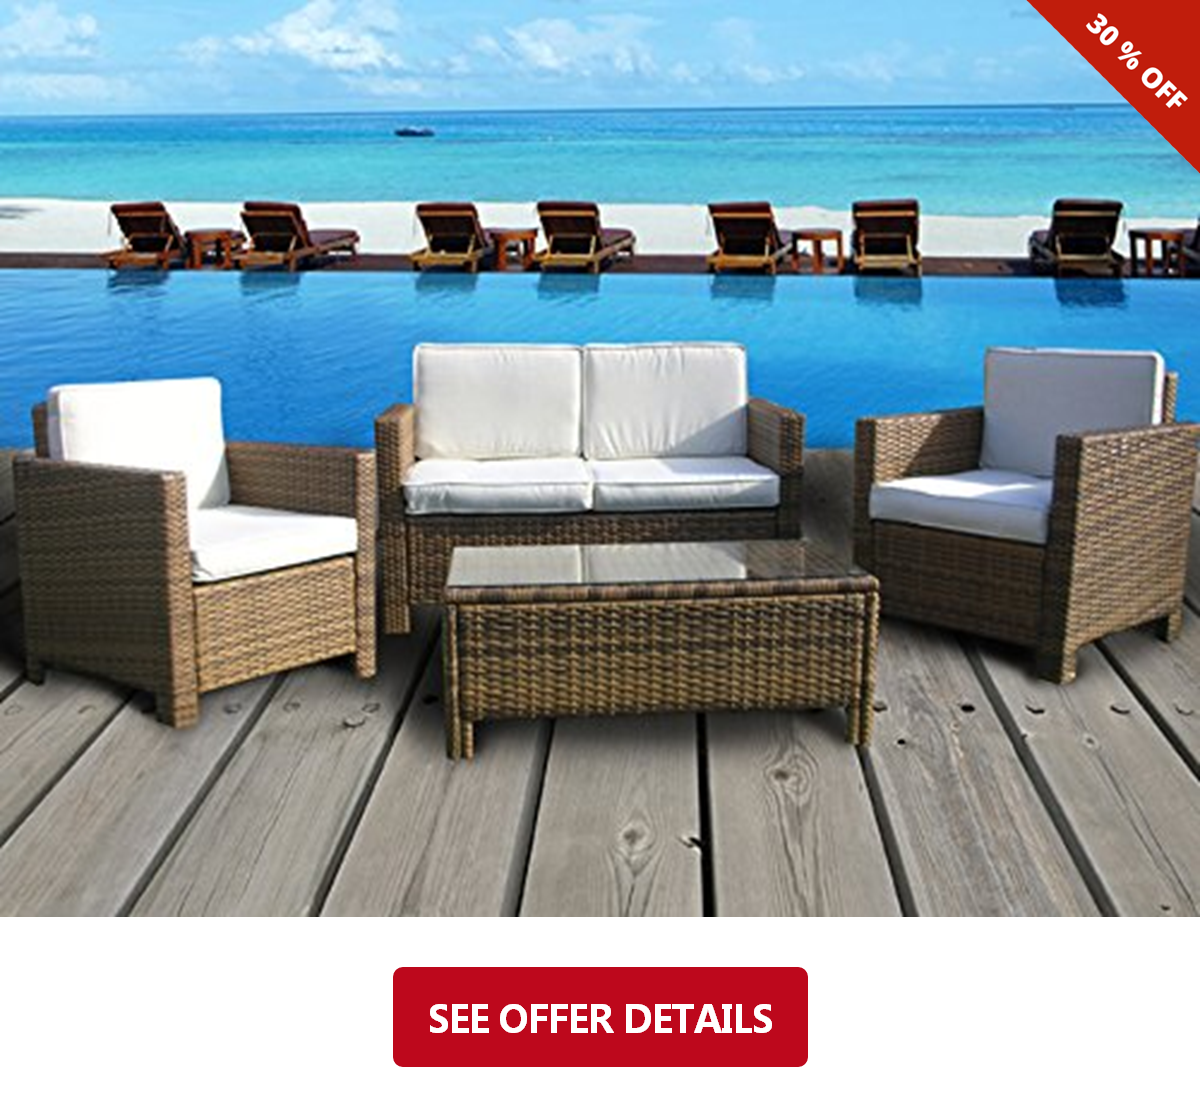 283 The Eden Rock Collection 4 Pc Outdoor Rattan Wicker